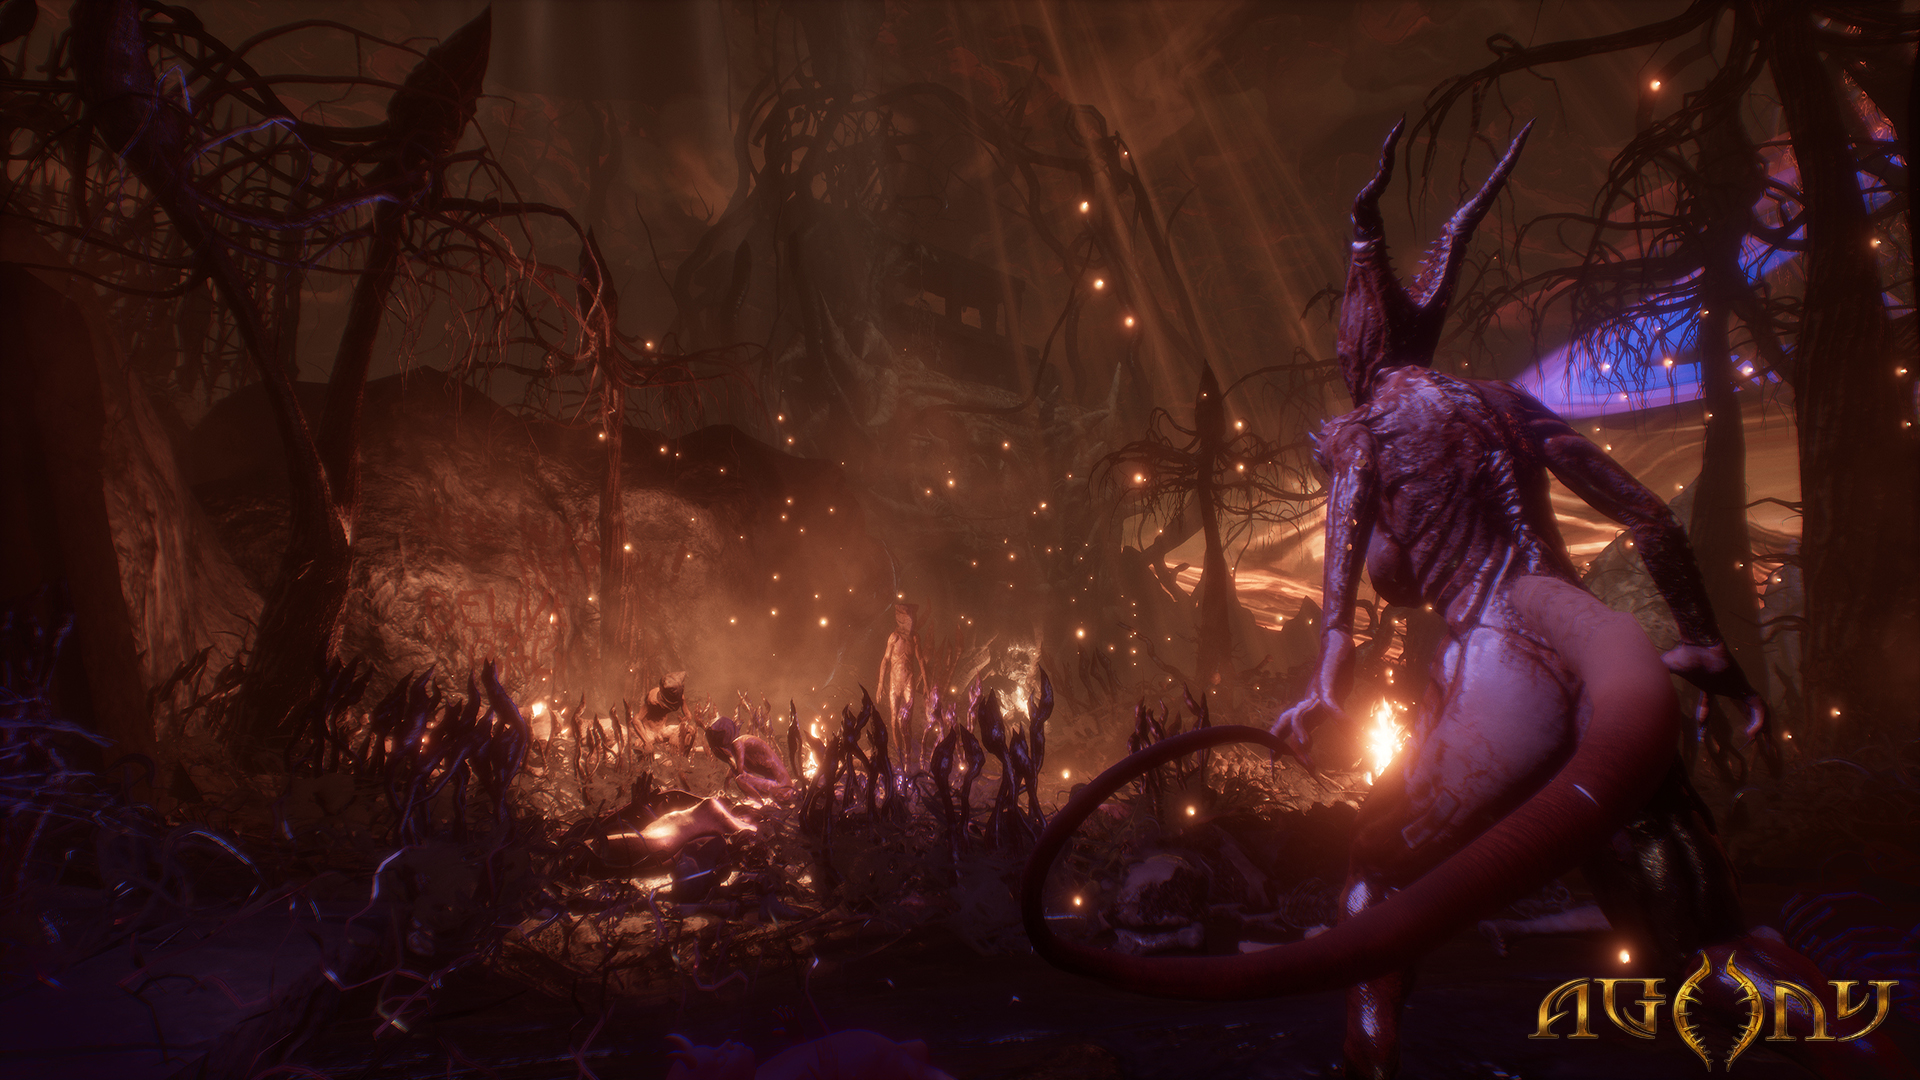 Horror Game Agony To Launch on May 29th for PC, PlayStation 4 and Xbox One